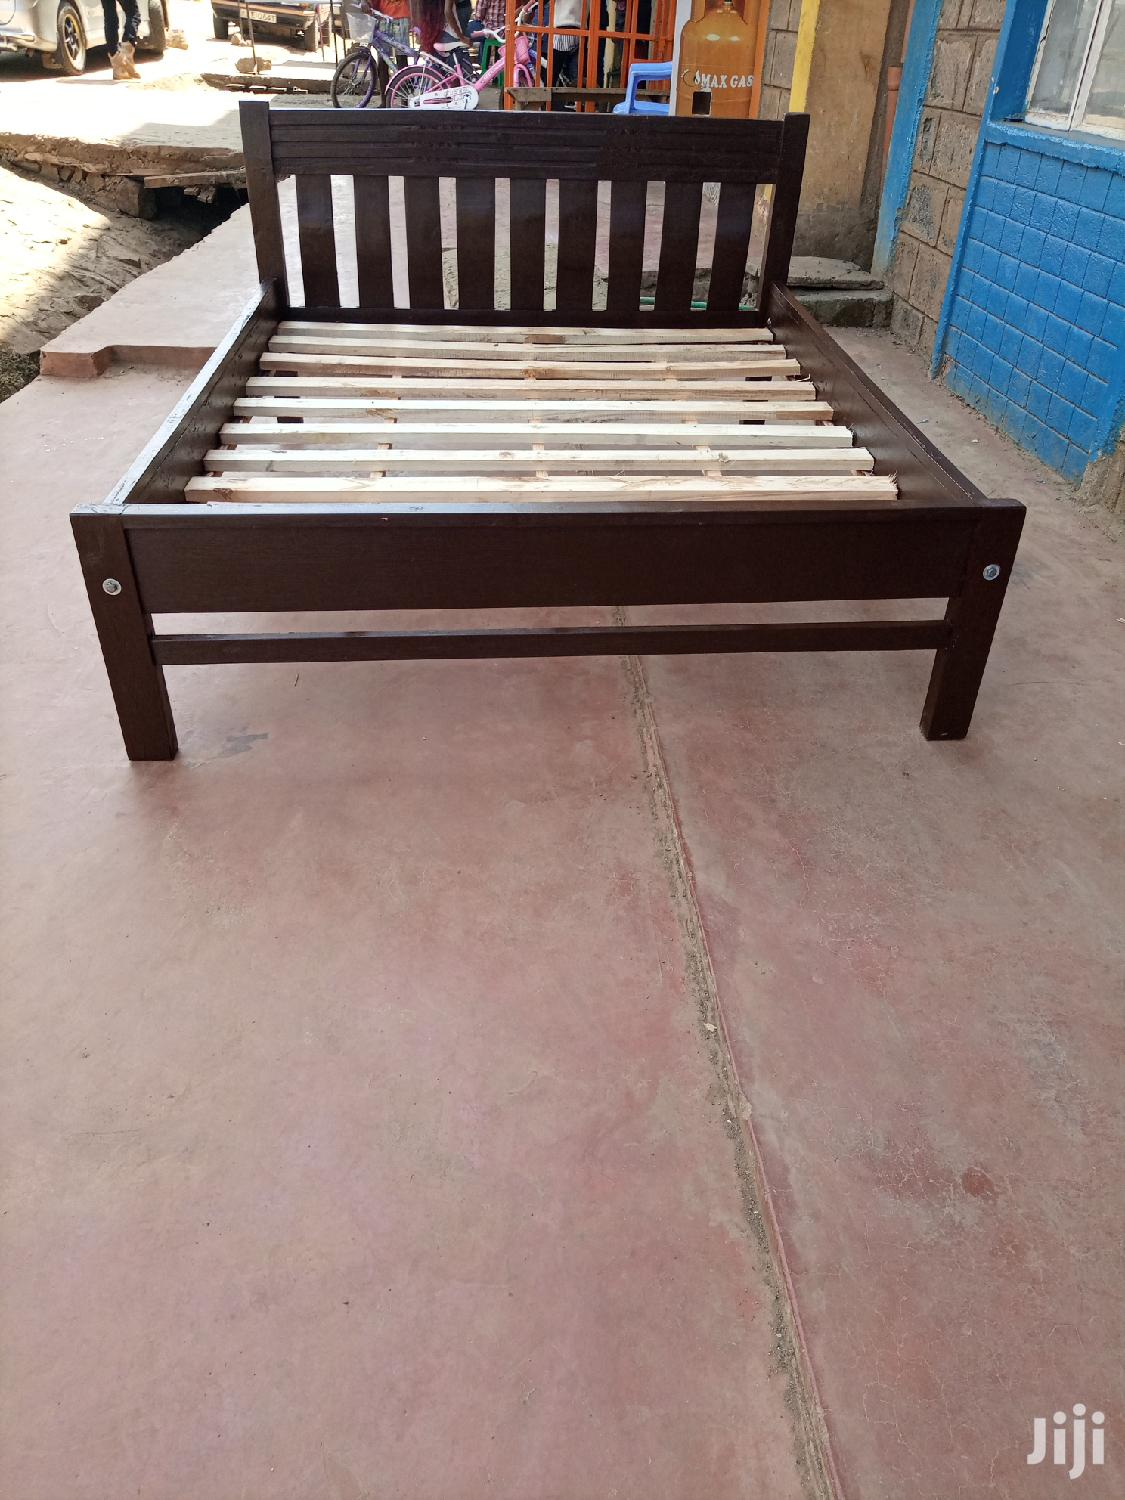 5 by 6 New Beds on Sale